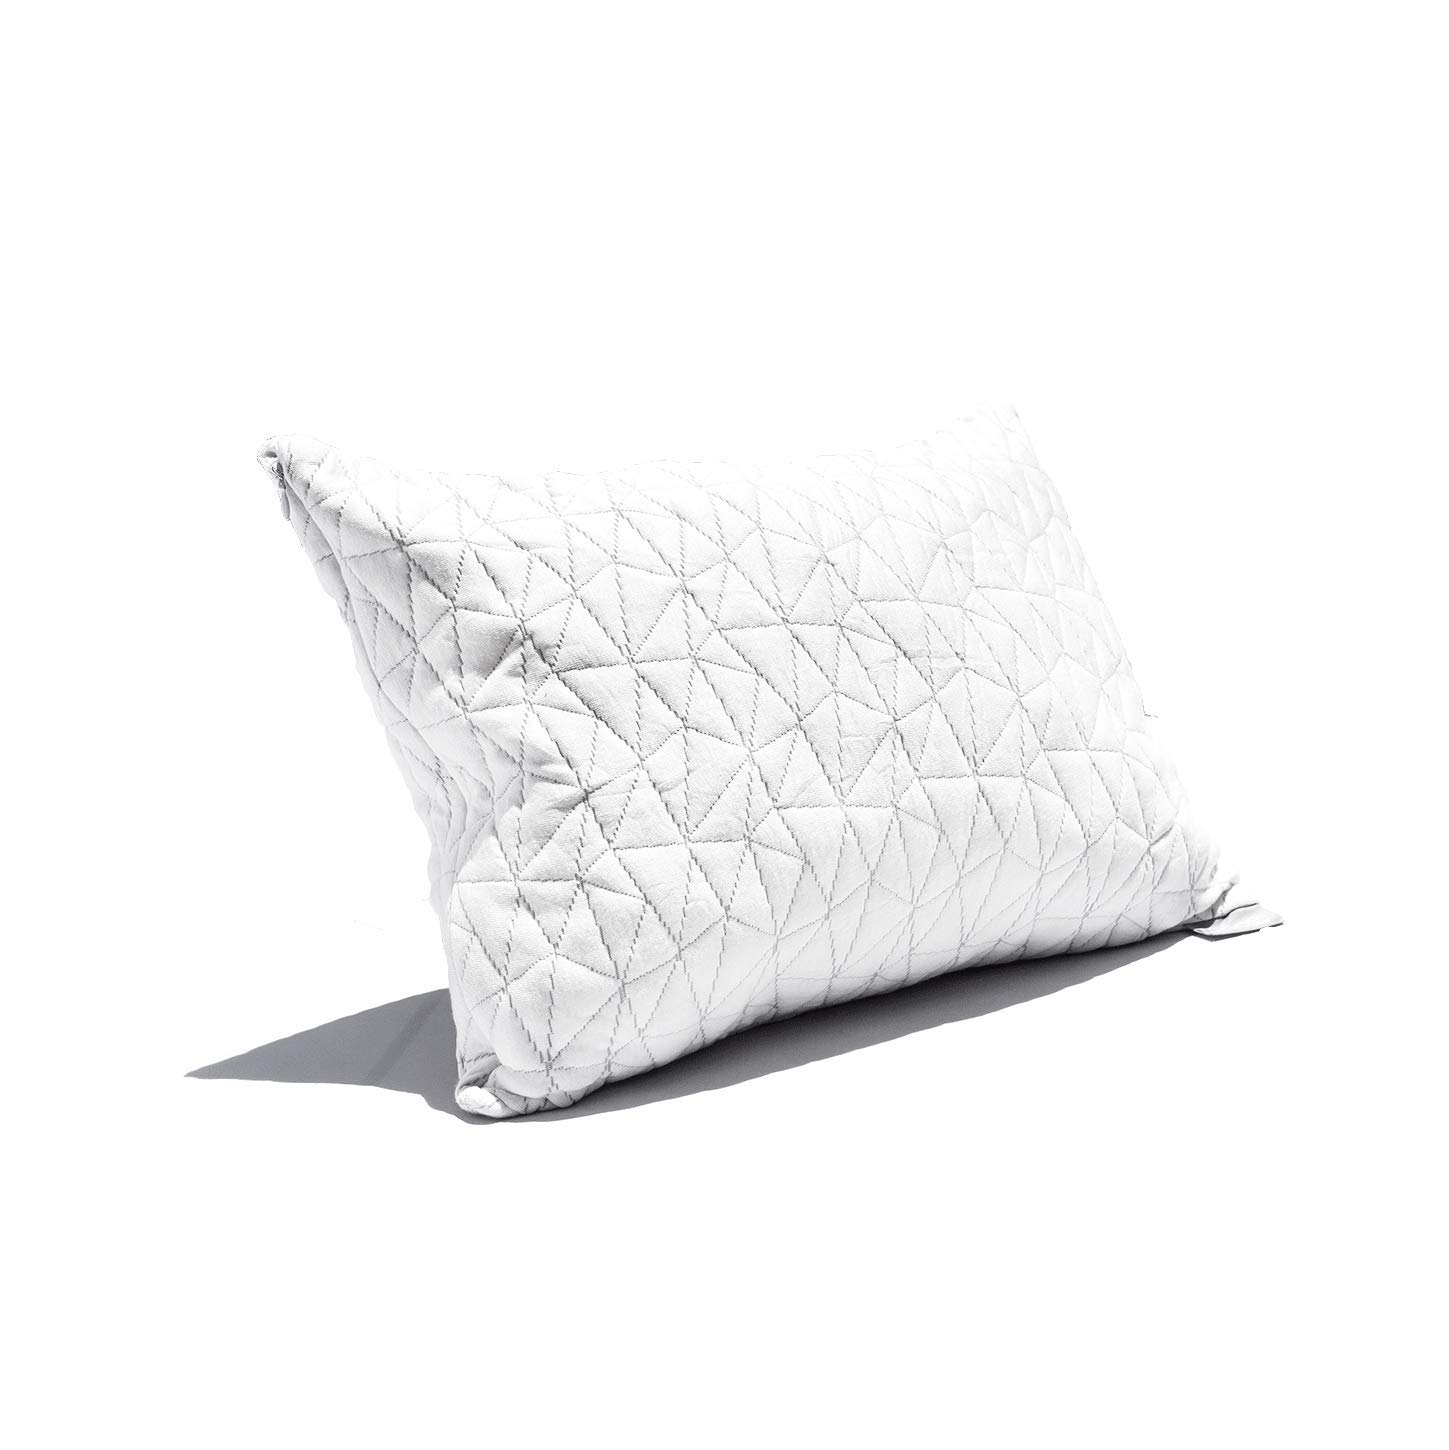 Coop Home Goods Shredded Memory Foam Toddler Pillow 14x19 Adjustable Hypoallergenic & Breathable Little Pillow-Made in The USA by Coop Home Goods